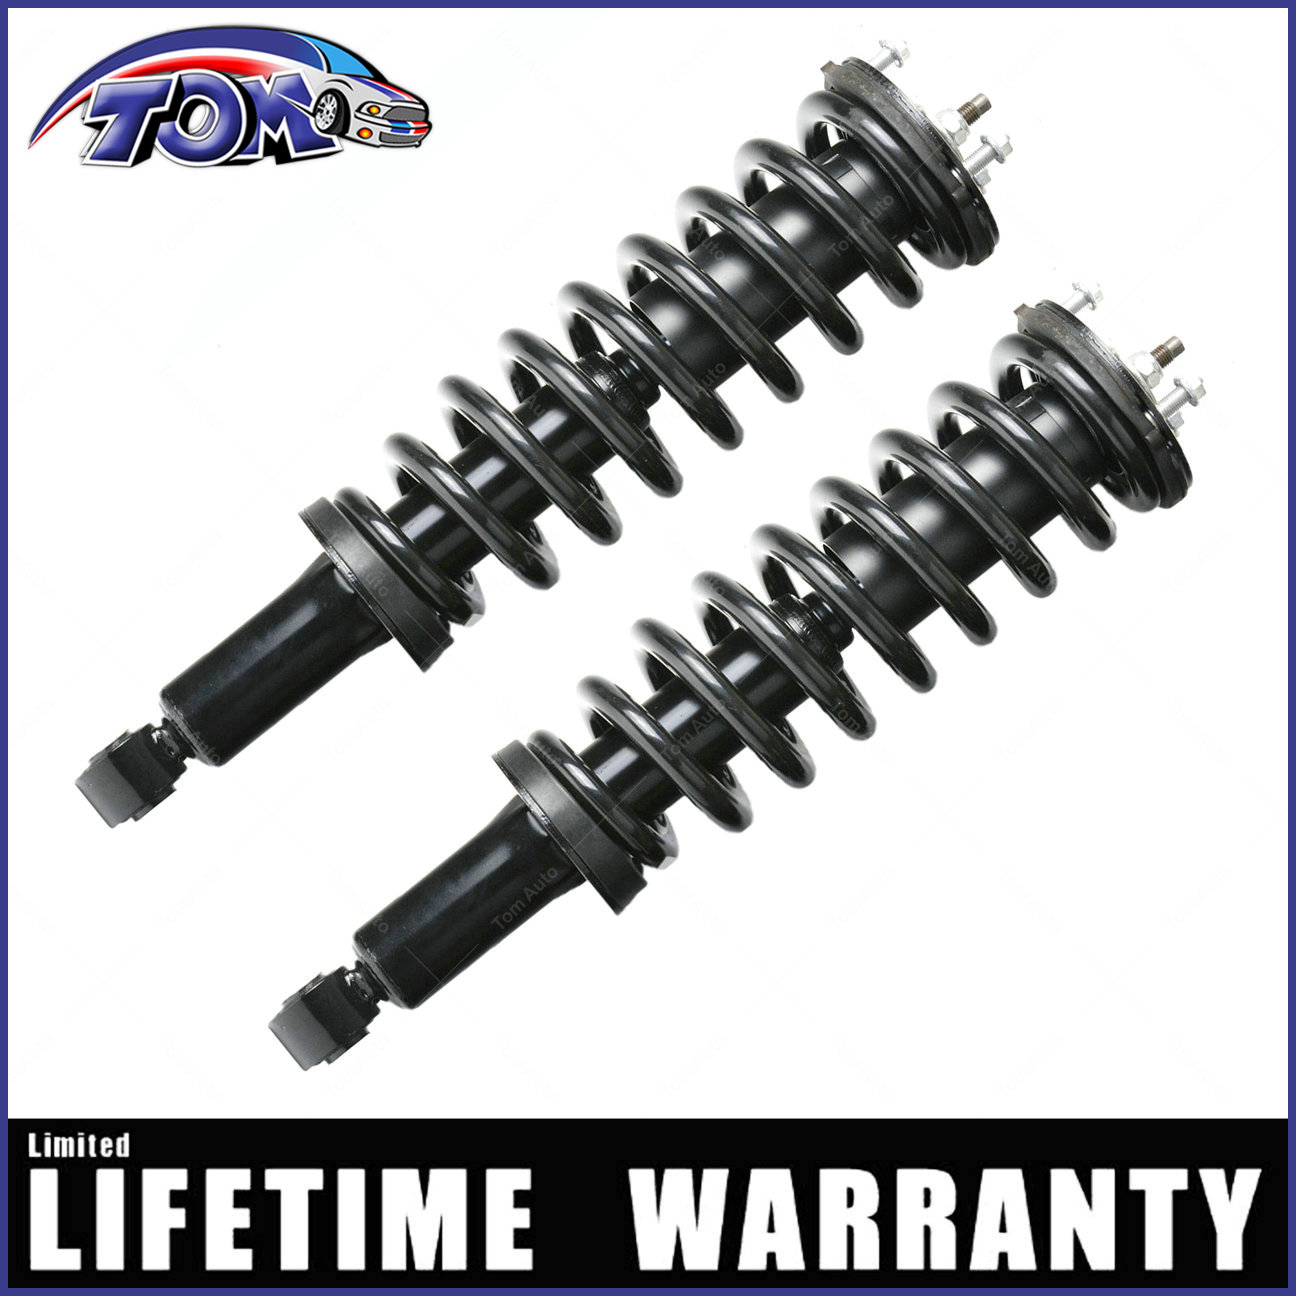 Fit 2001 2002 2003 2004 2005 2006 2007 Toyota Sequoia Front Shocks /& Struts Pair